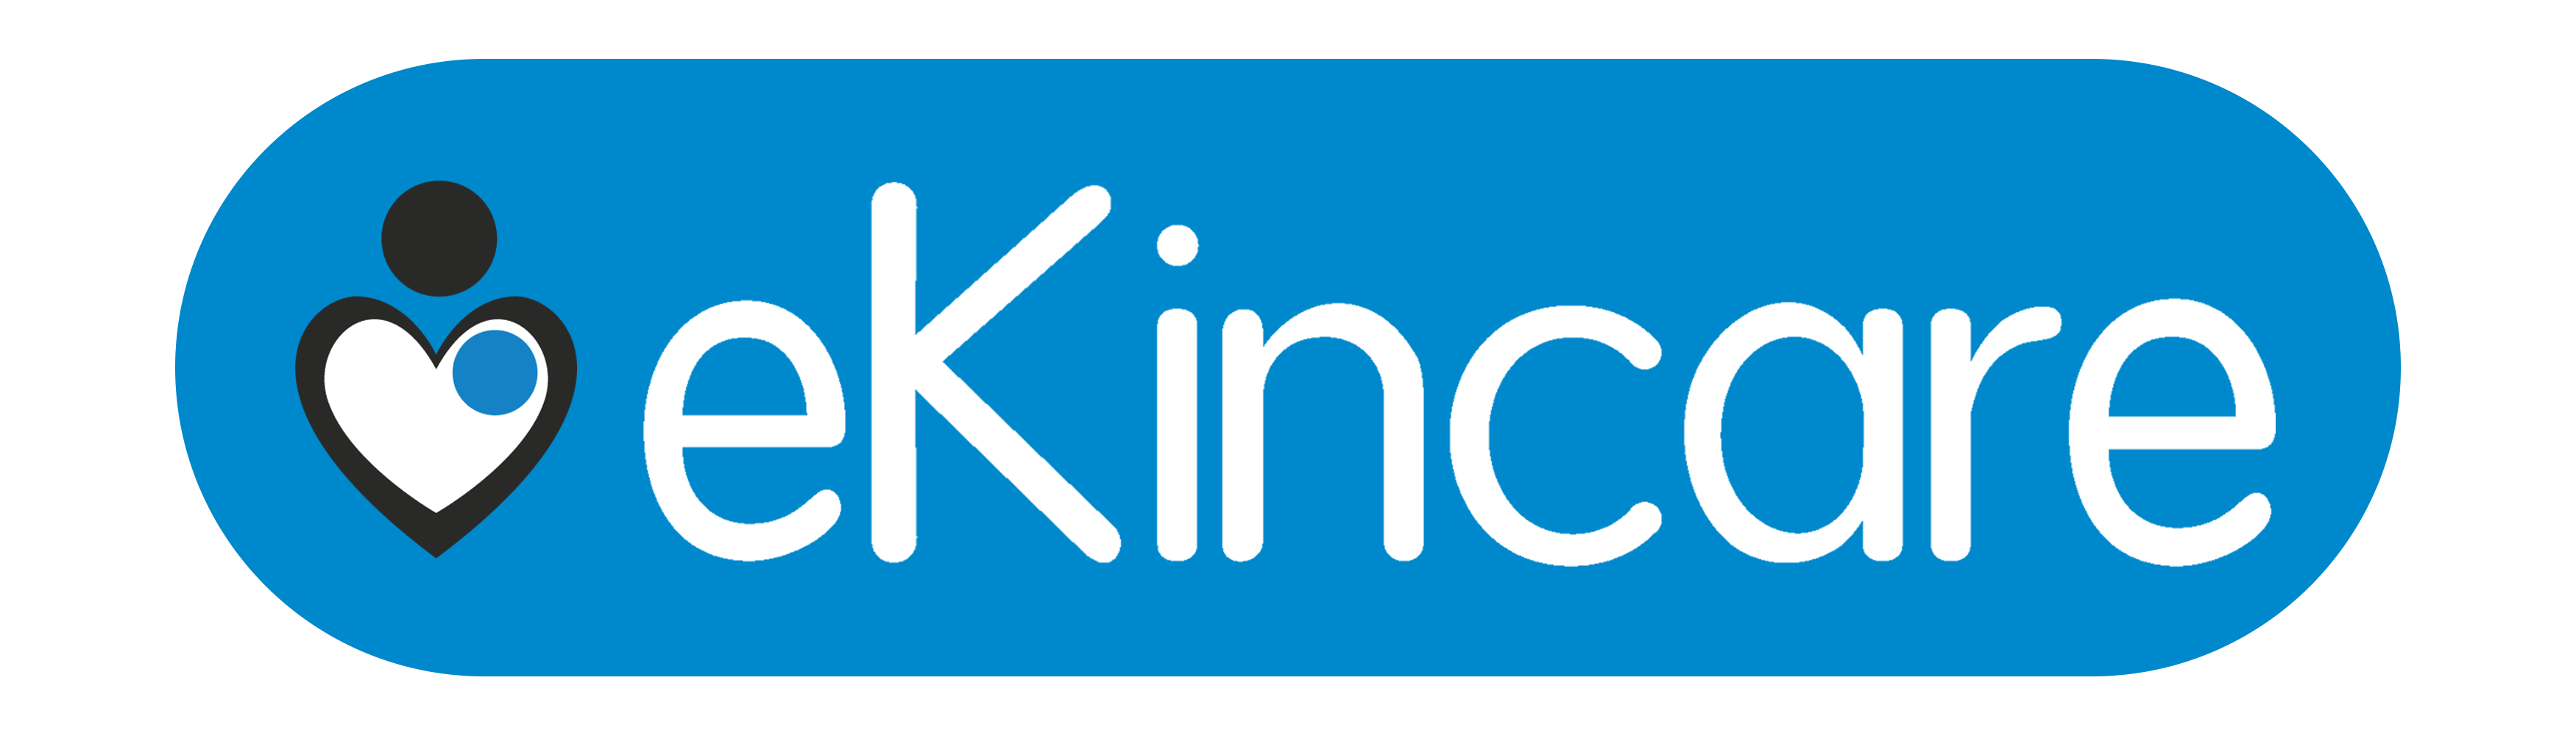 eKincare - Integrated Healthcare Benefits Platform